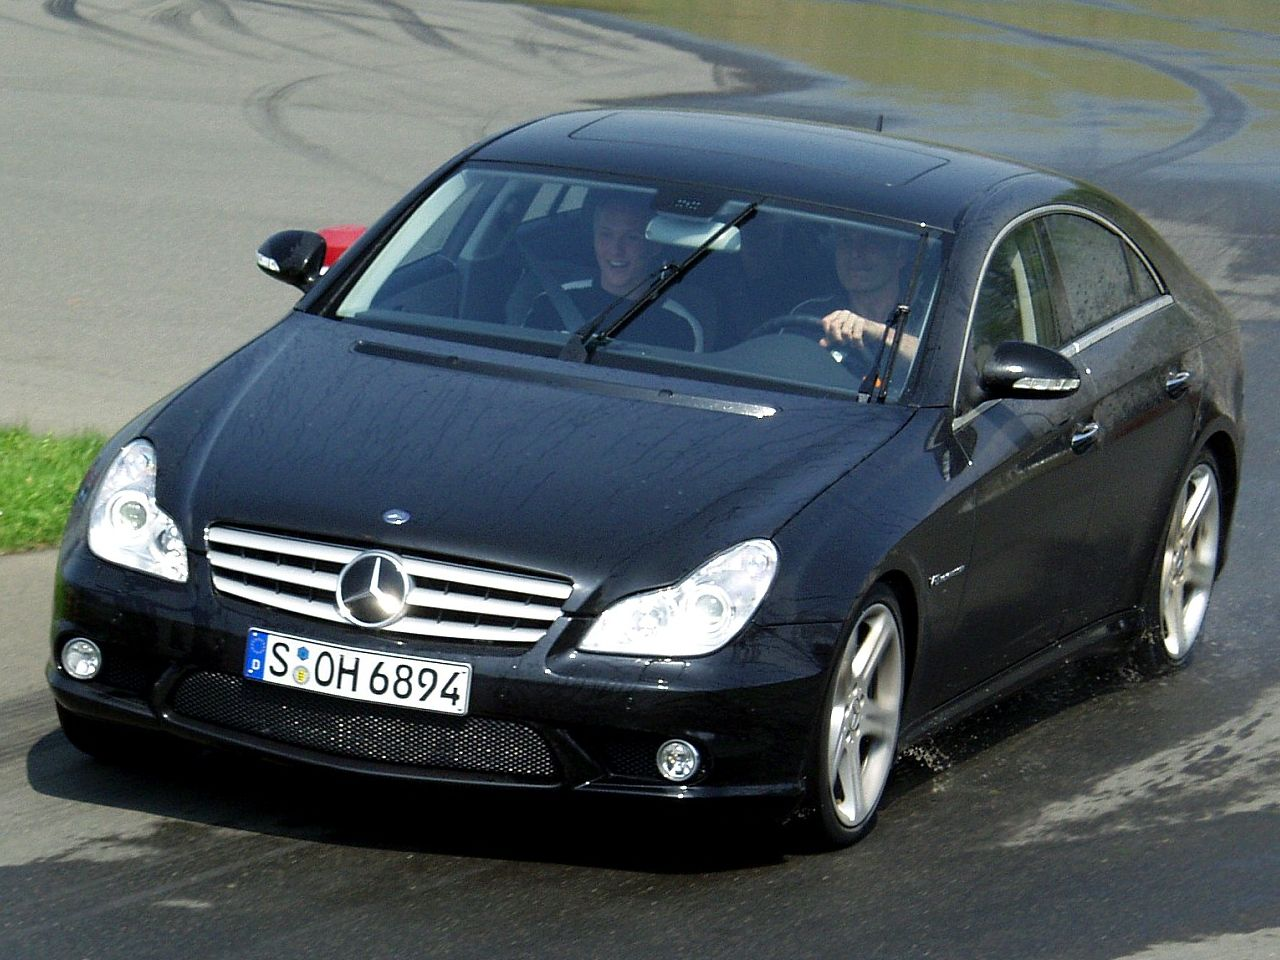 file mercedes amg cls 55 demonstration of drifting 1a wikimedia commons. Black Bedroom Furniture Sets. Home Design Ideas